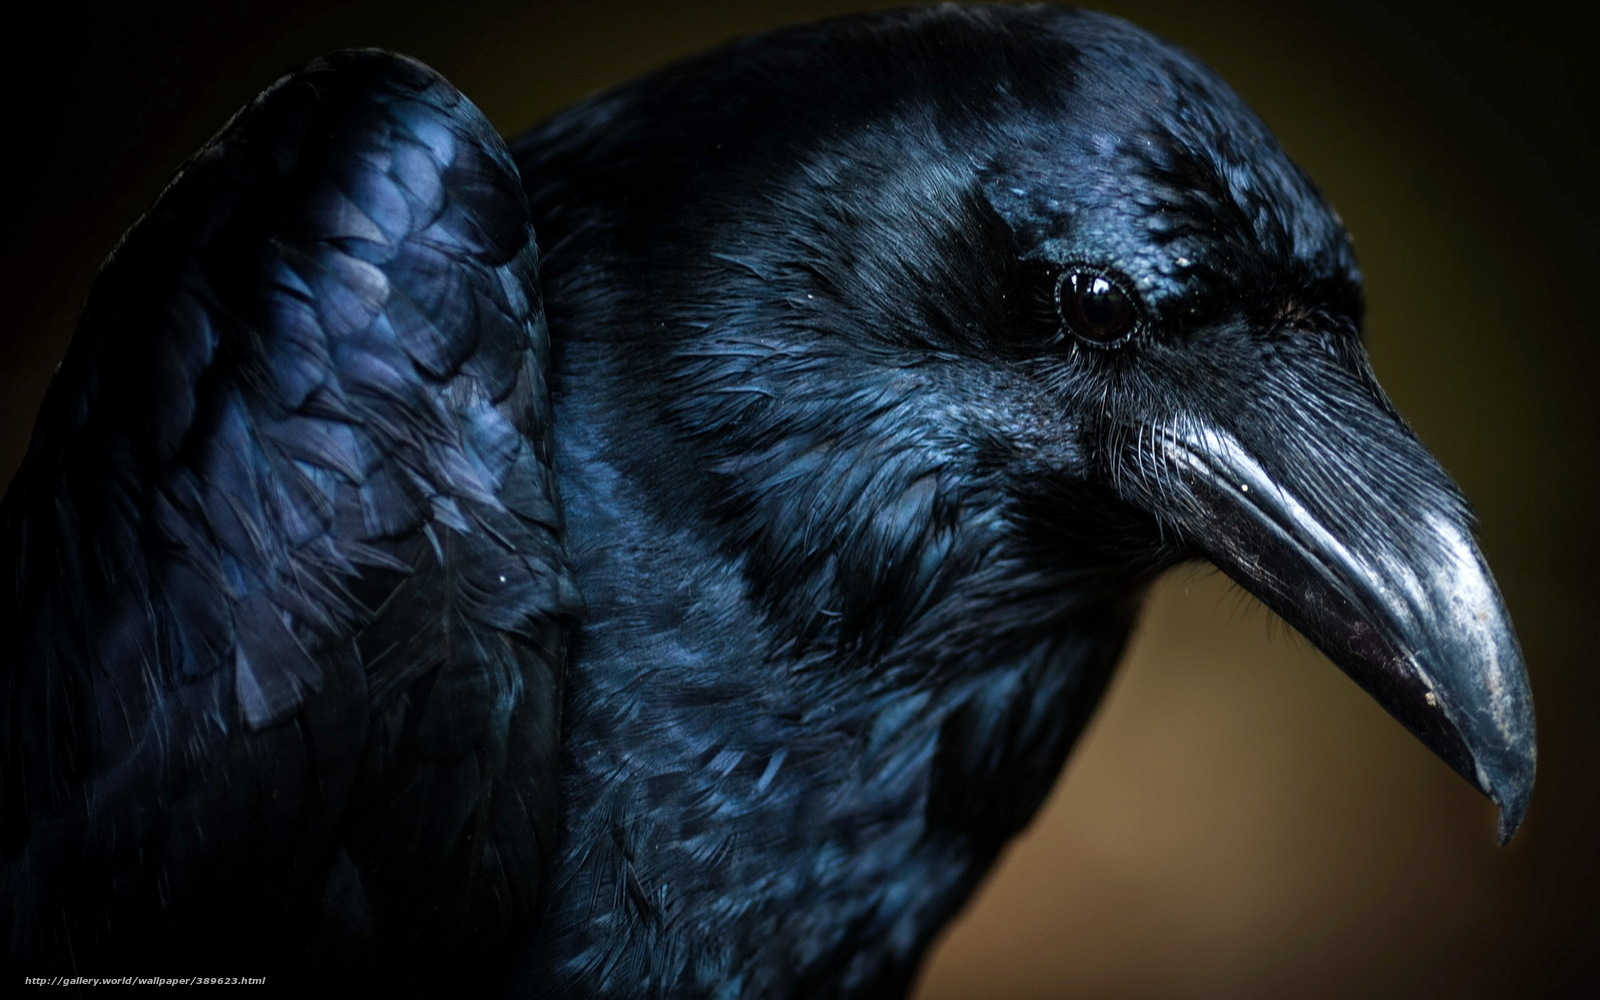 Download wallpaper bird raven macro desktop wallpaper in the 1600x1000